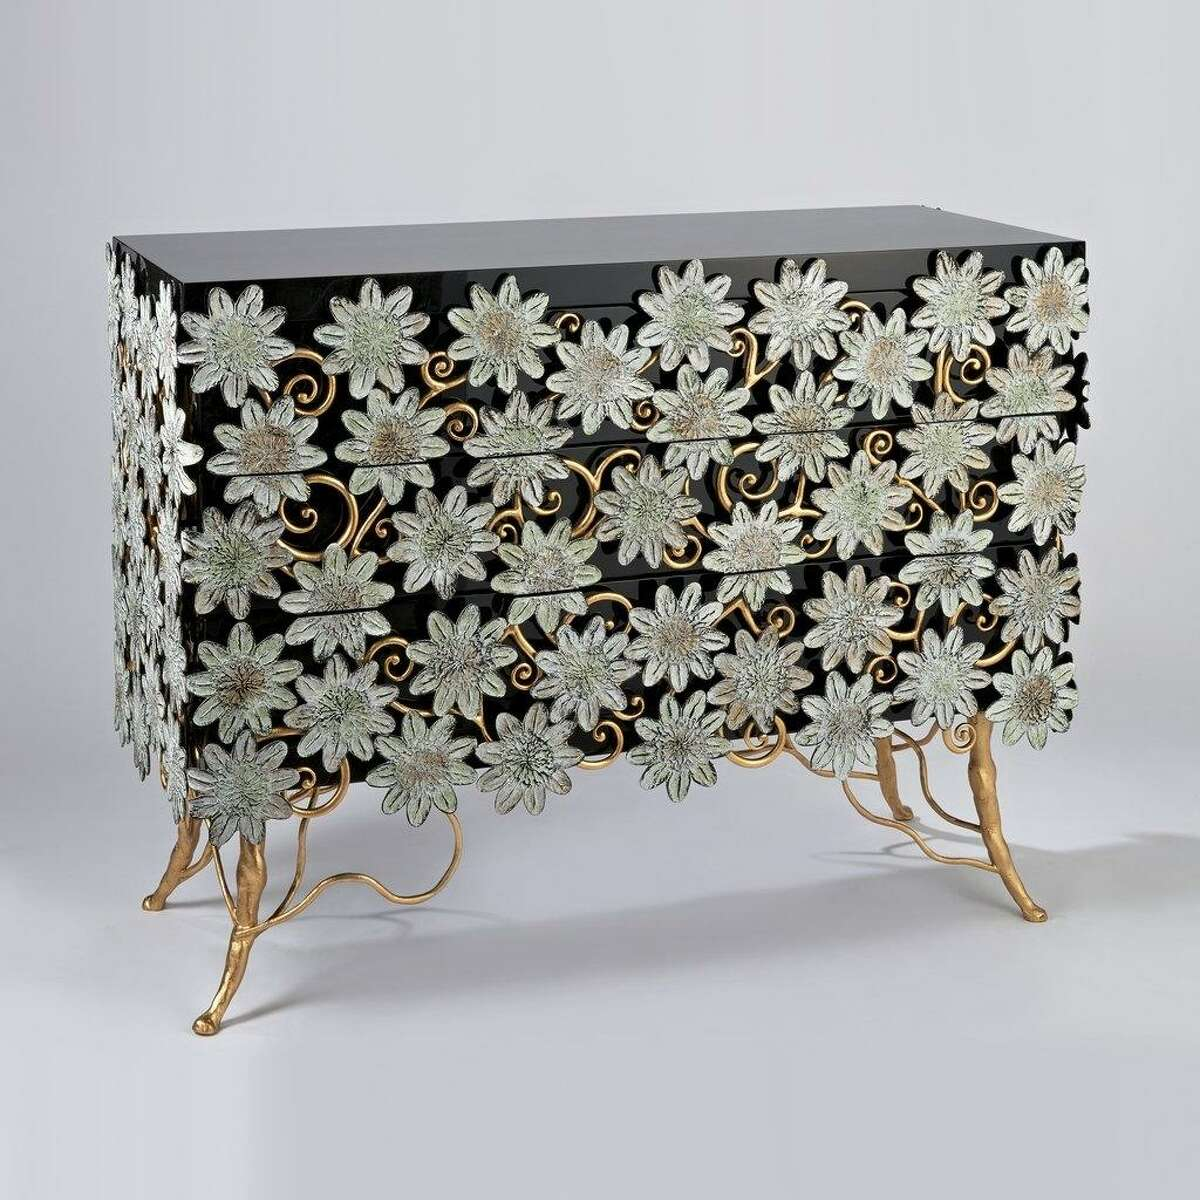 Functional art: It's hard to call this work by artist Le Gall Hubert a dresser, with hits gorgeous ebony finish, gold leaf and hand-painted bronze flowers. $x,xxx; 21stgallery.com